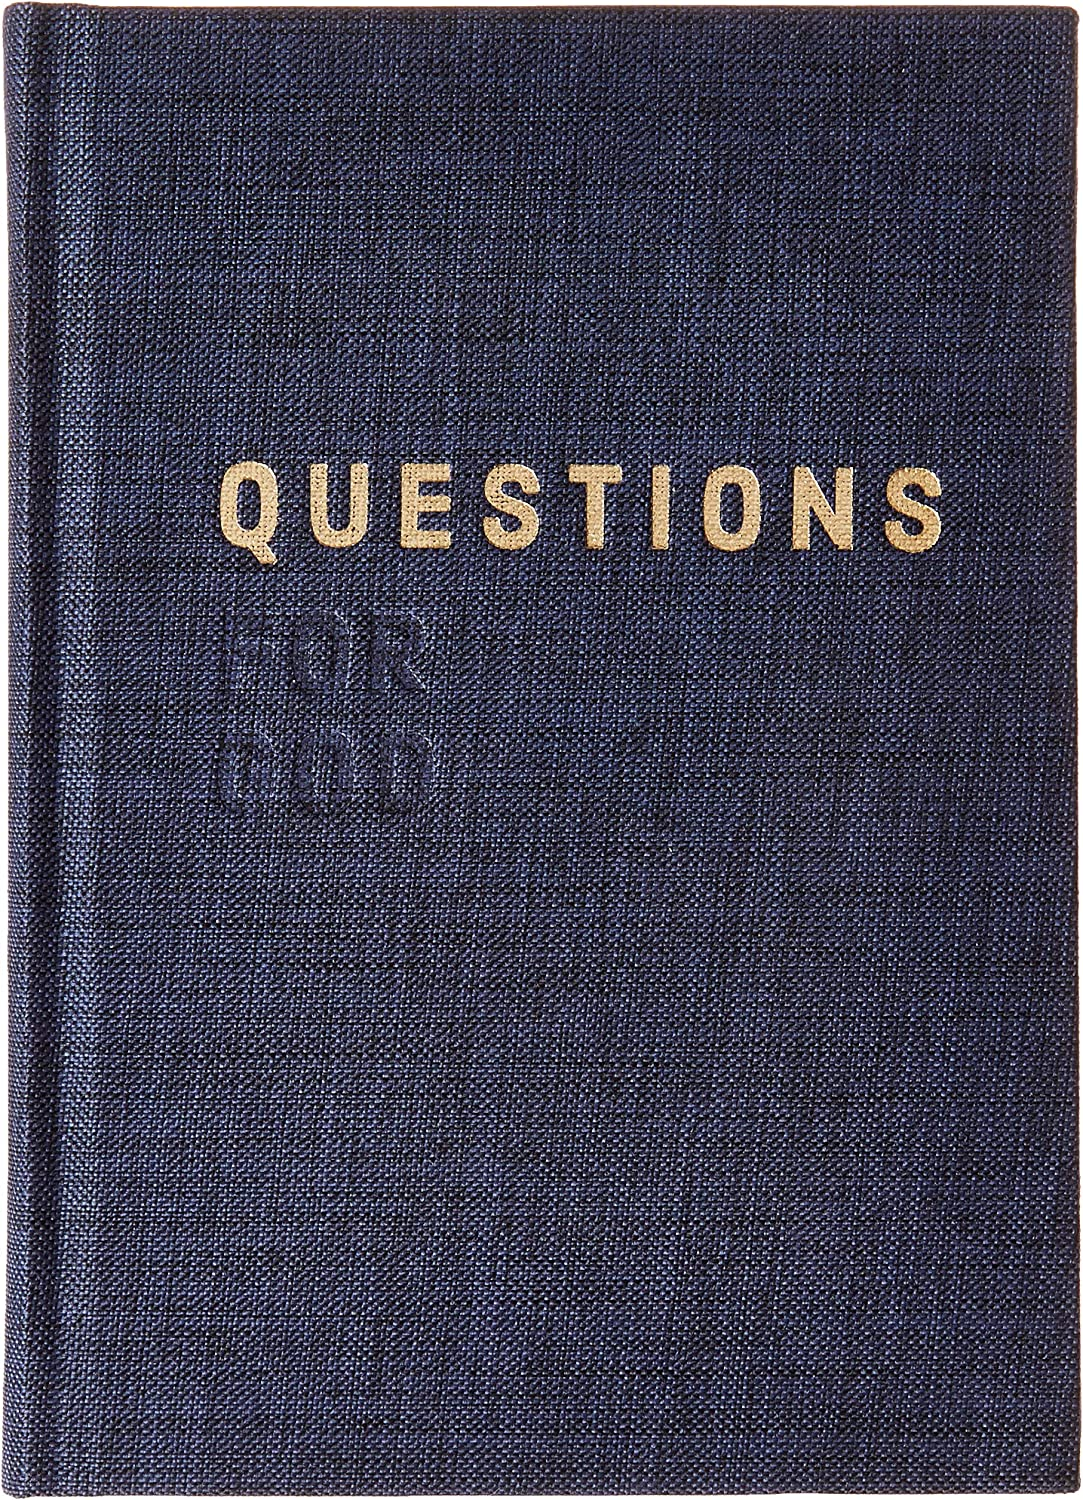 even Teens and Kids Questions for God Prayer Notebook Hardcover Book With Letterpress Embossed Cover Daily Devotional for Meditation and Contemplation Gratitude Journal For Women Men